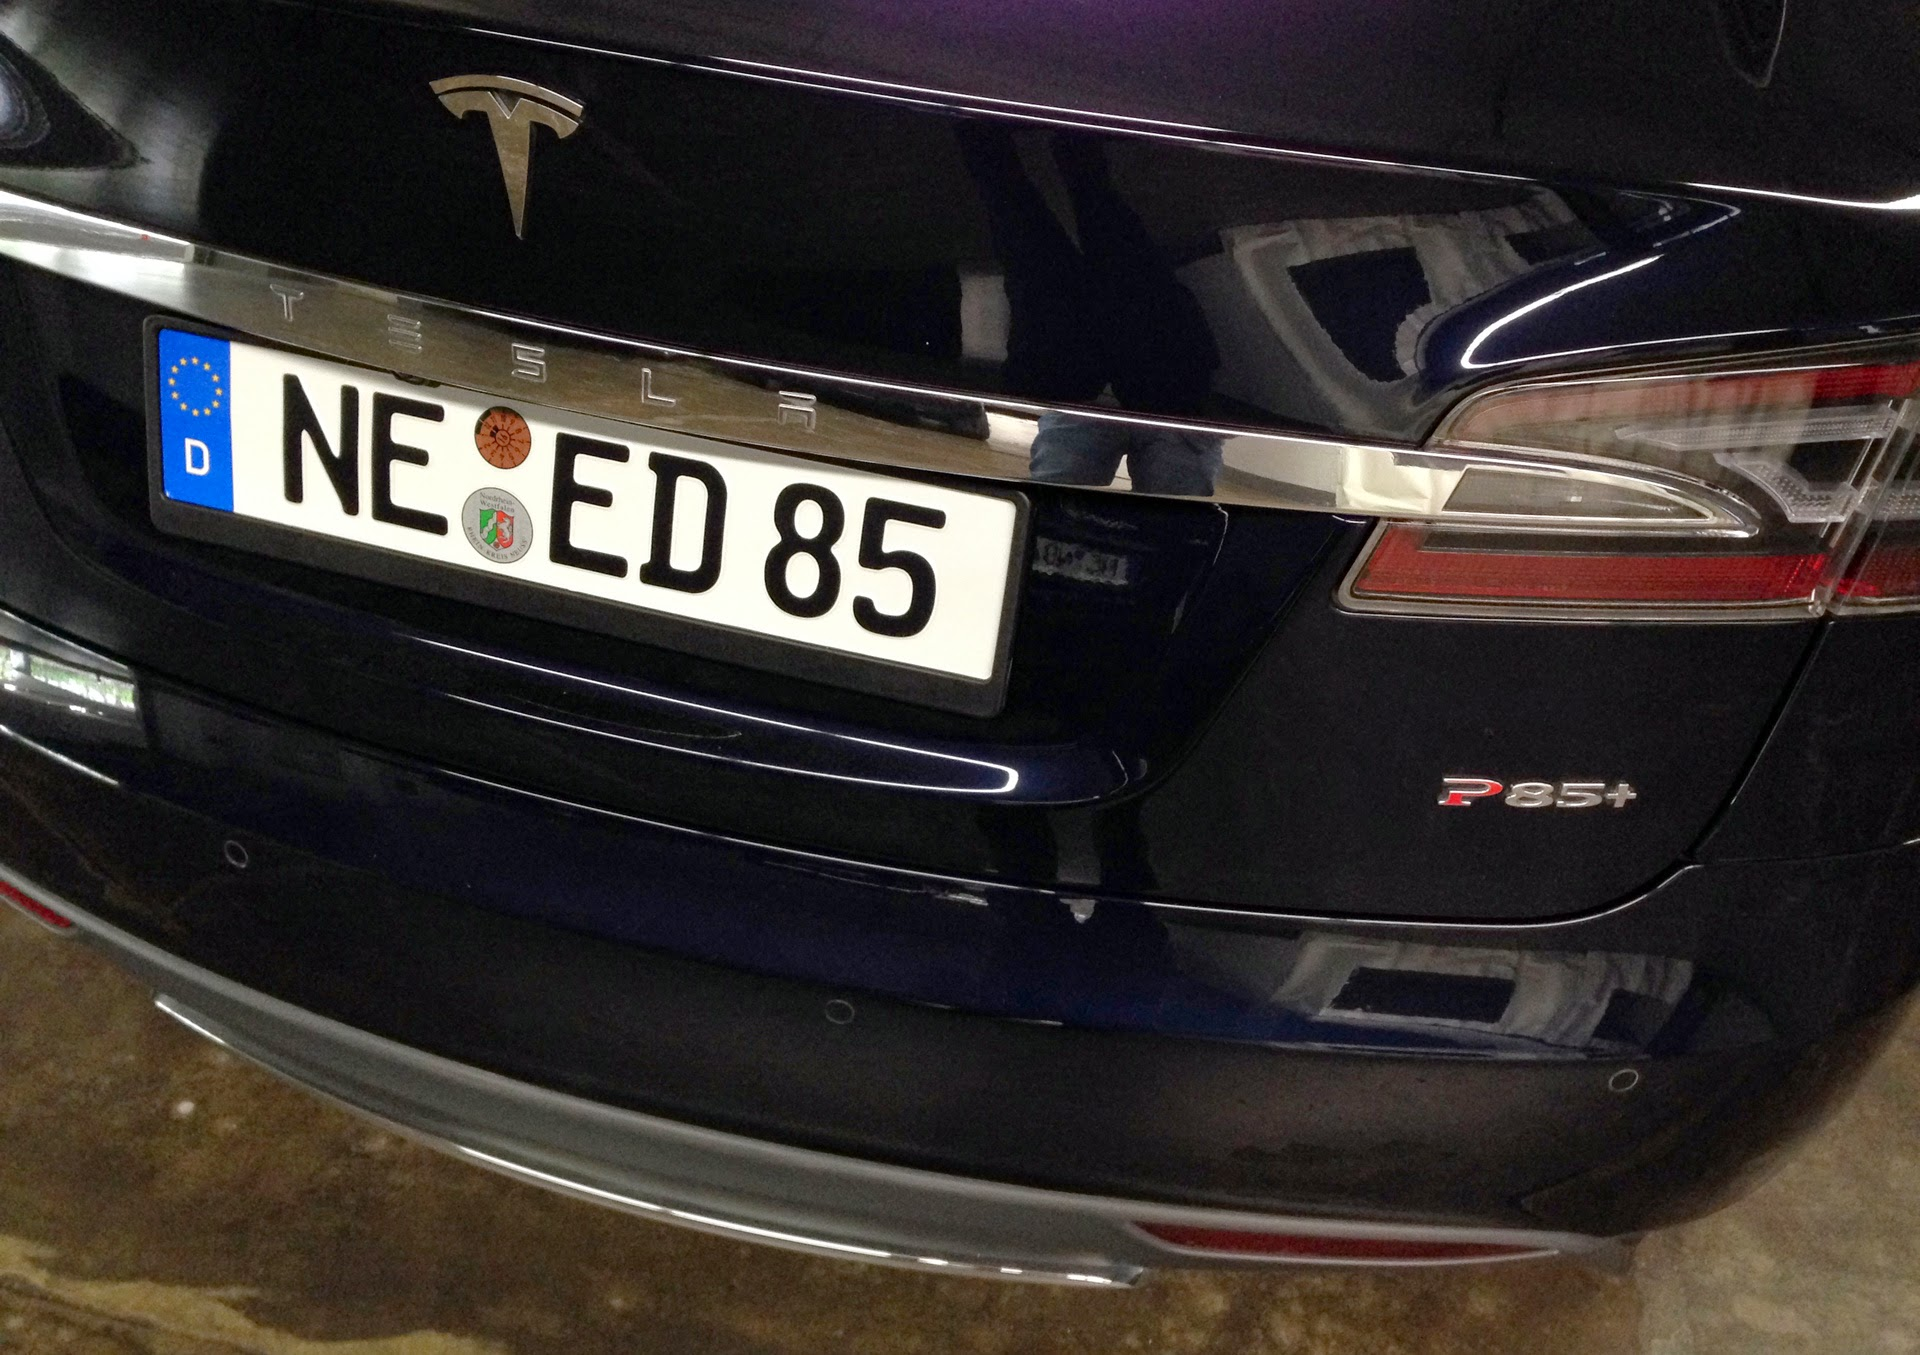 The Ultimate List Of Vanity License Plate Names Tesla - Car signs and namesideas name of car on wwwpeculiarpurlscom